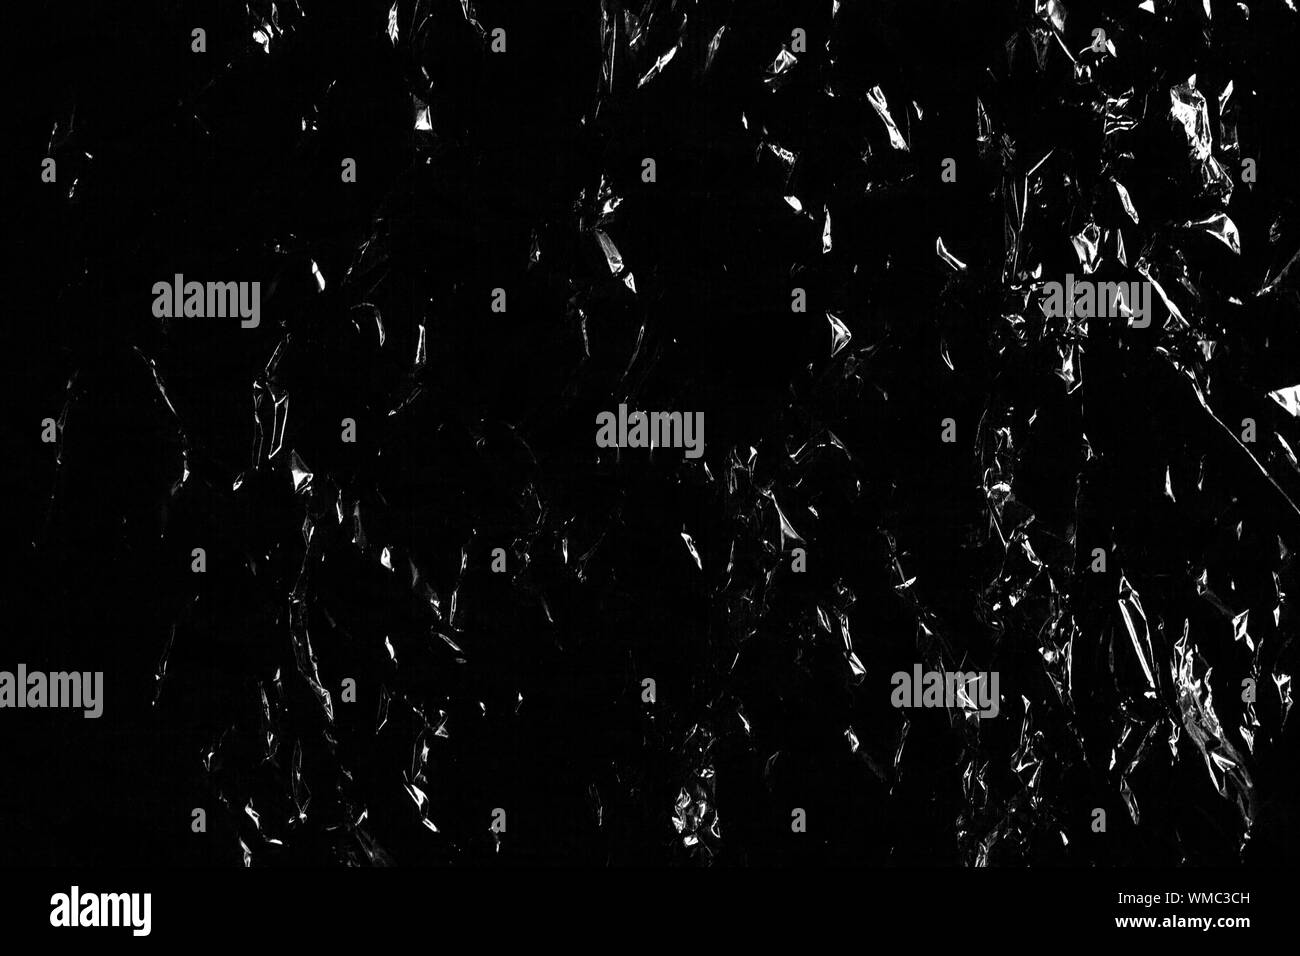 Black Metal Texture Shiny High Resolution Stock Photography And Images Alamy Here are only the best metal texture wallpapers. https www alamy com black abstract background shining silver metallic glitter surface dark shiny crumpled metal backdrop design sharp hard gloom texture pattern image270714769 html